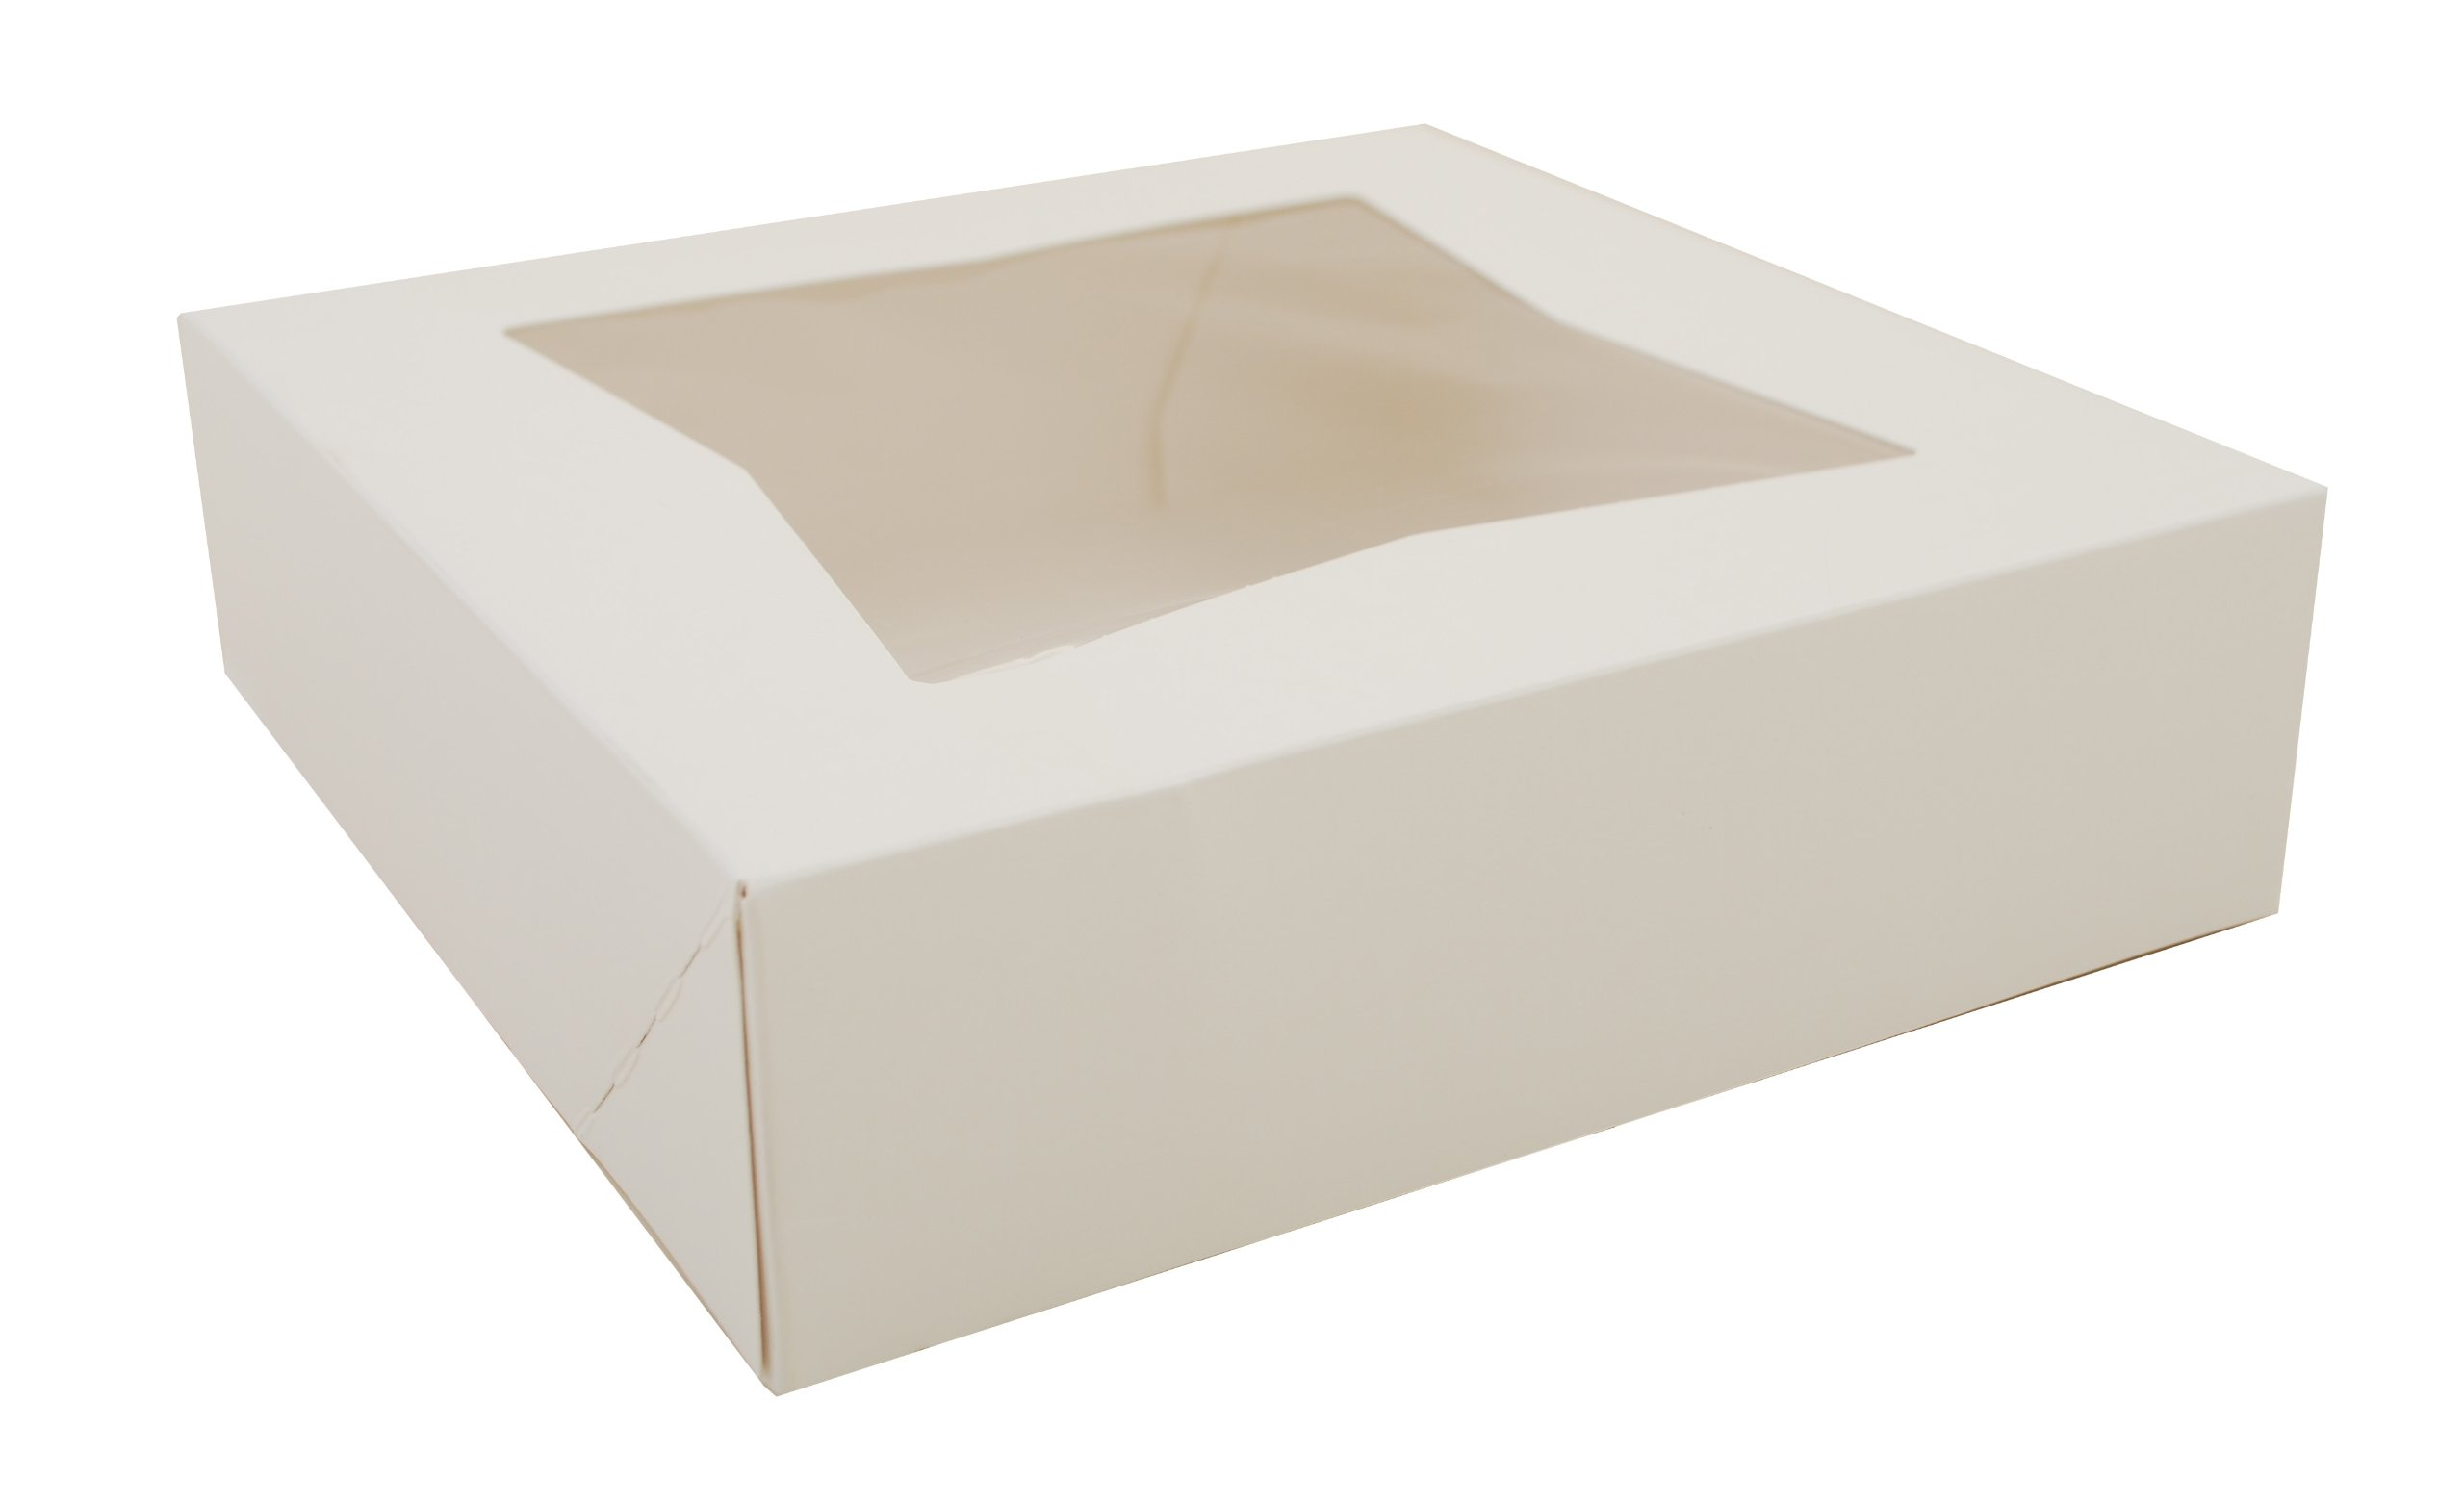 Southern Champion Tray 24133 White Paperboard Window Bakery Box, 9'' Length x 9'' Width x 2-1/2'' Height (Case of 200)